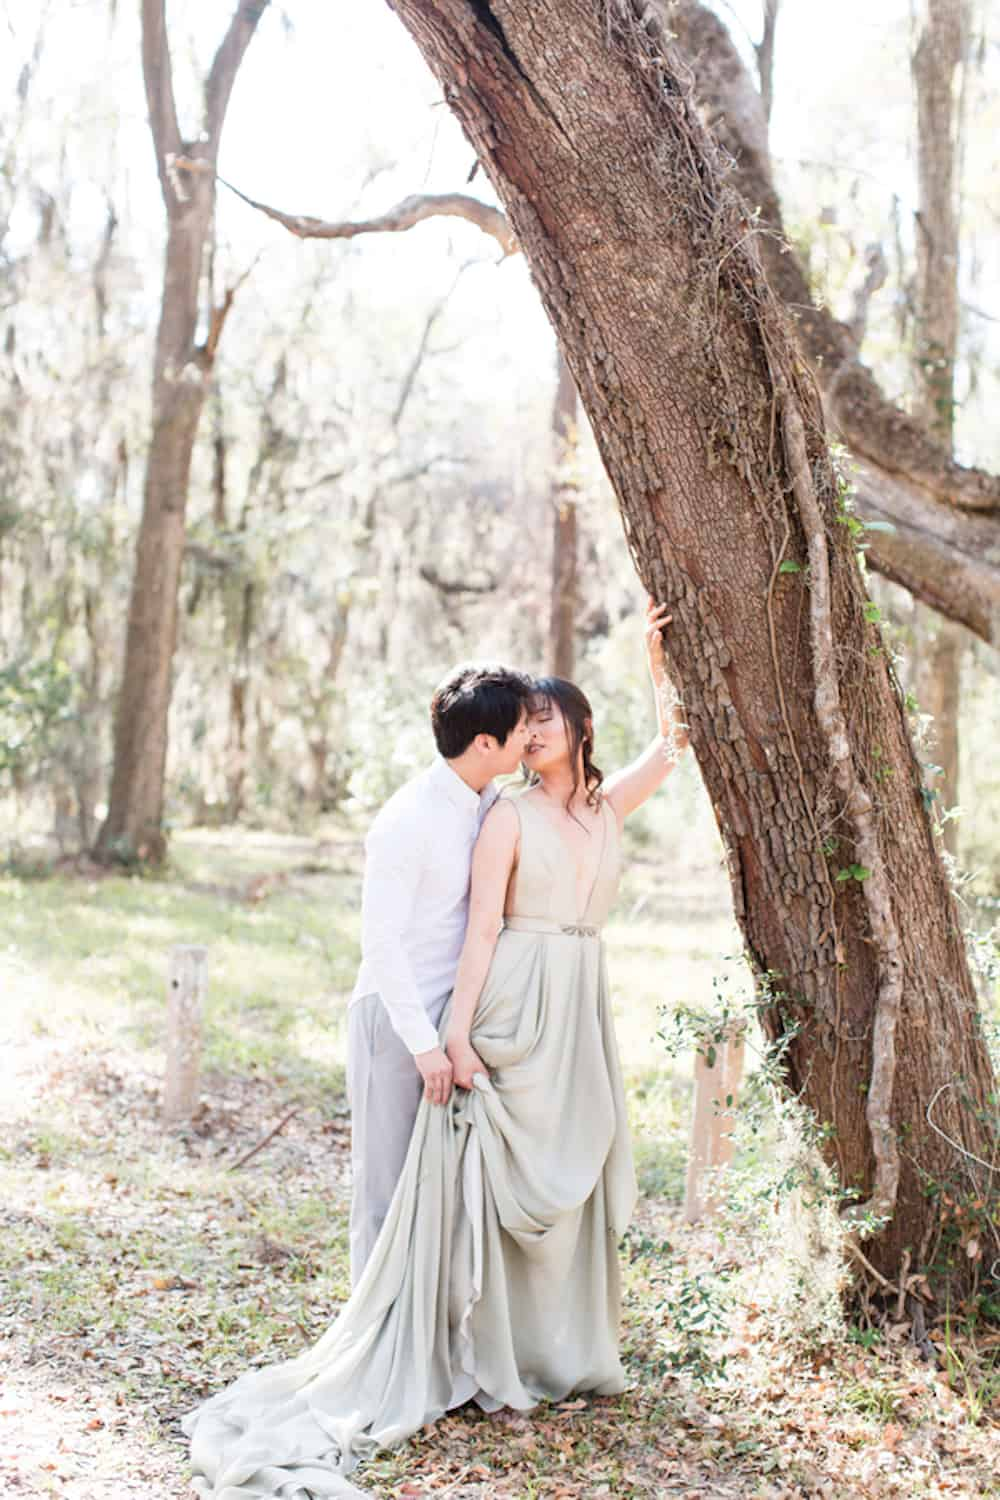 4 DanielleHarrisPhotography_Destinationweddingphotographer54sg_low